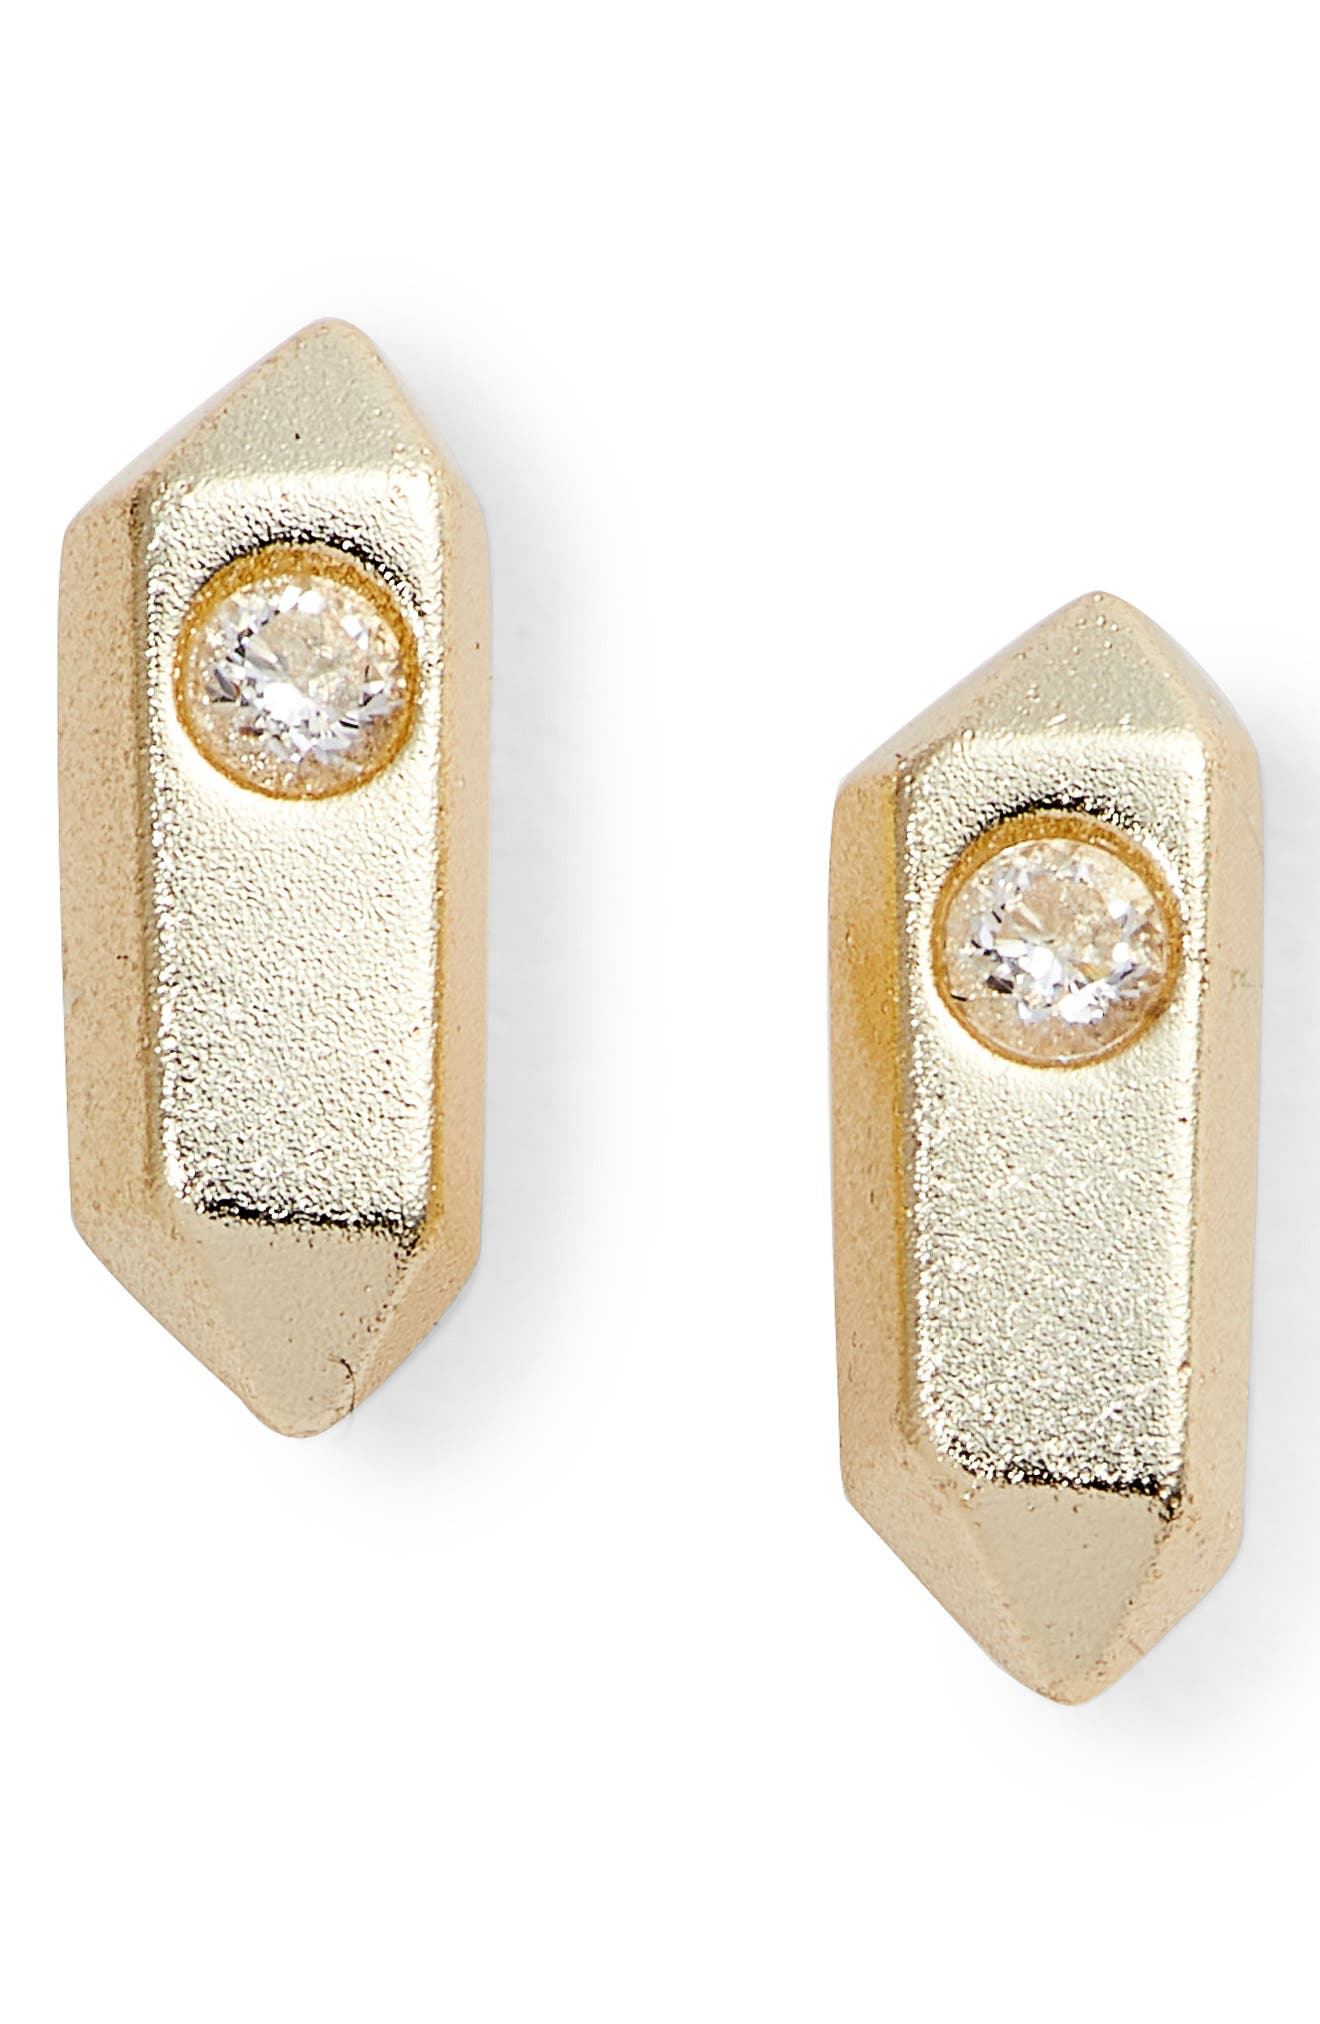 Kendra Scott Rooney Stud Earrings